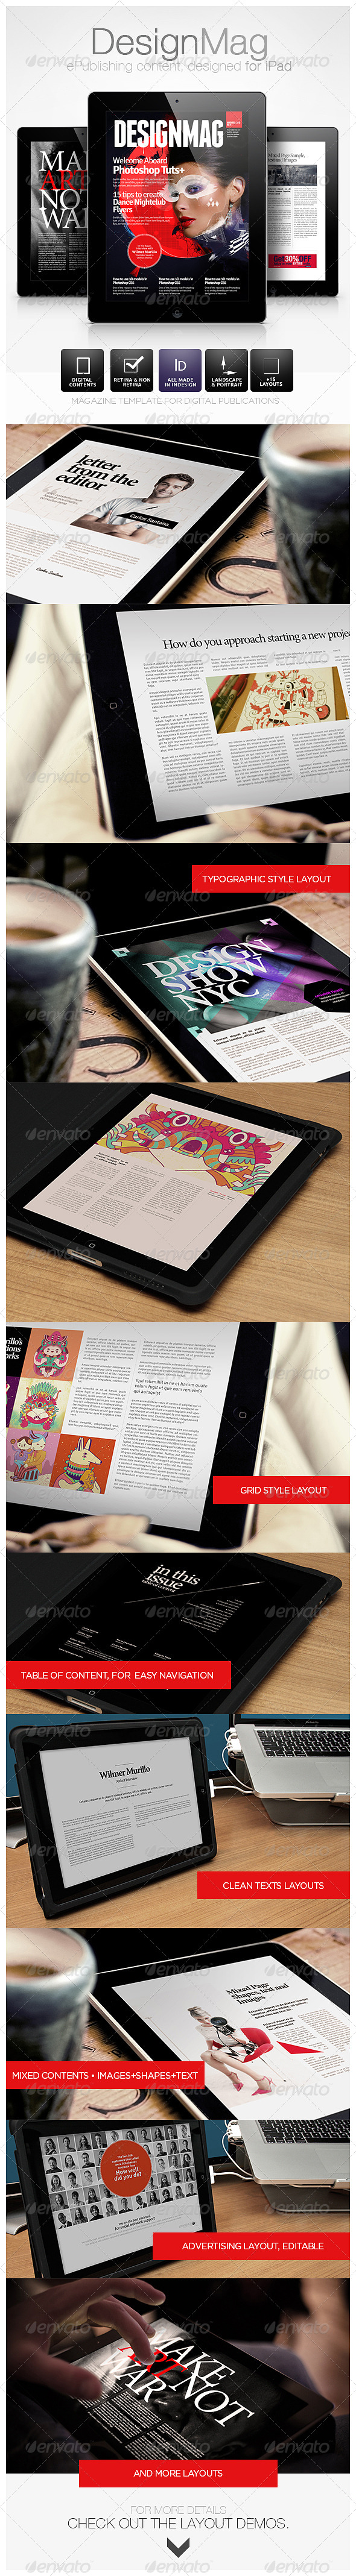 GraphicRiver DesignMag iPad Magazine 4682224